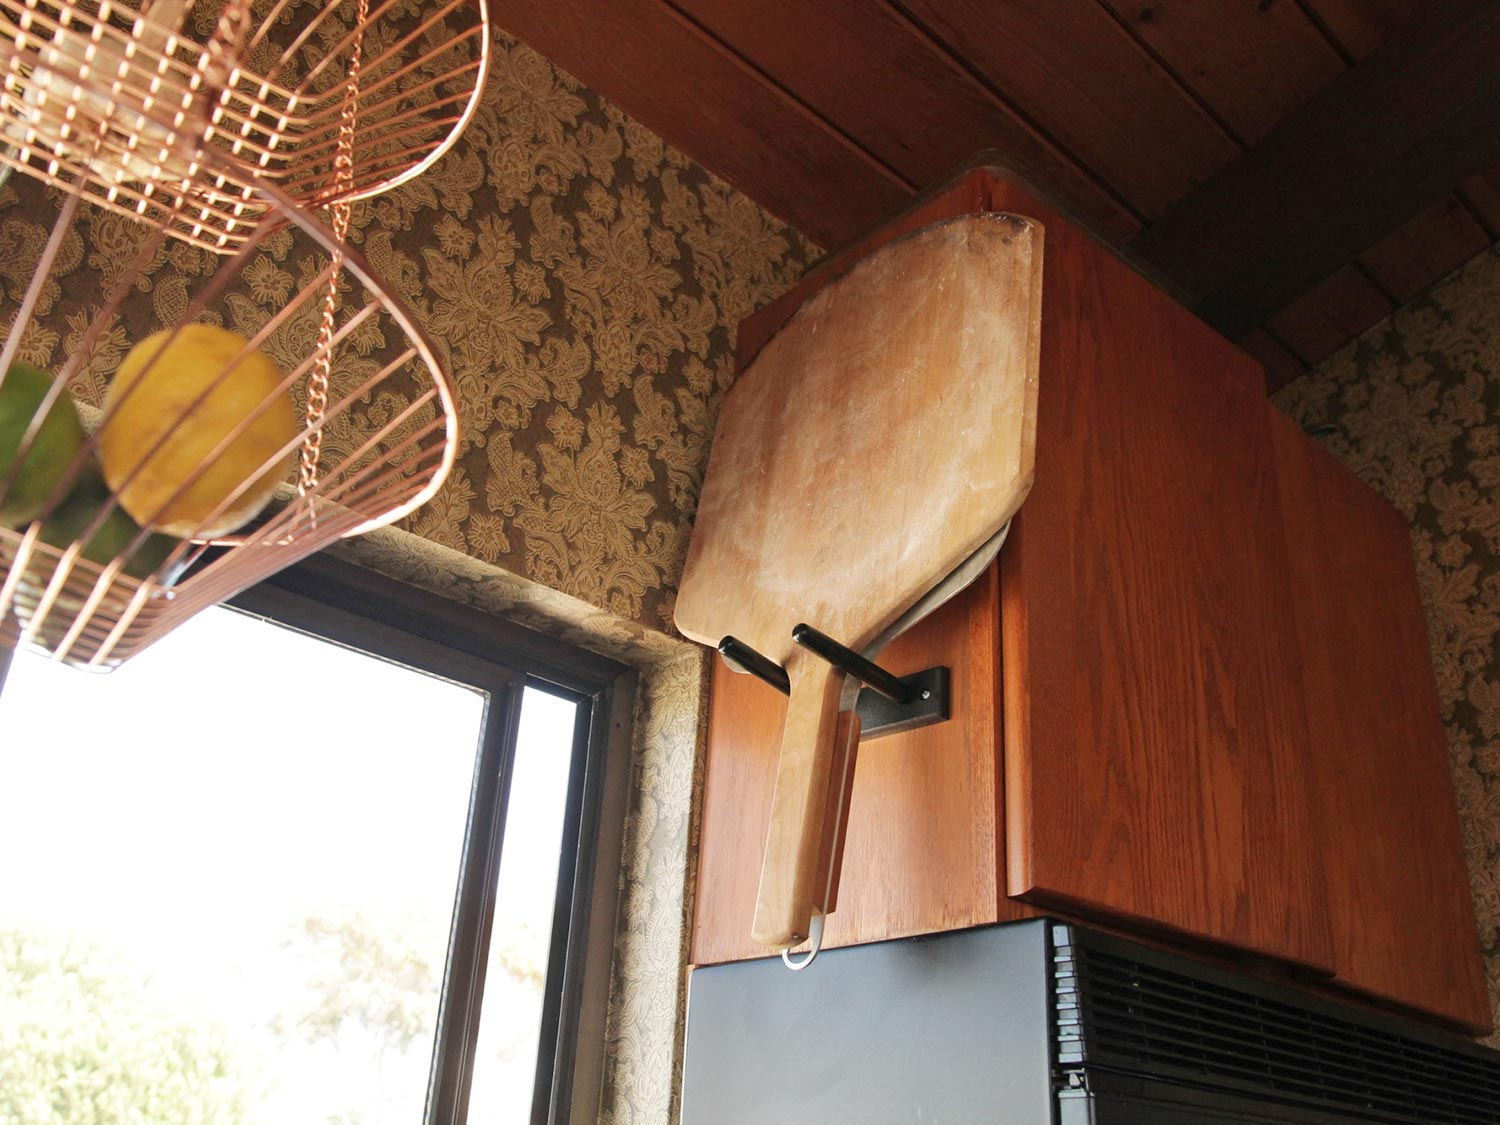 1 Guitar Mount To Solve Pizza Peel Storage Forever